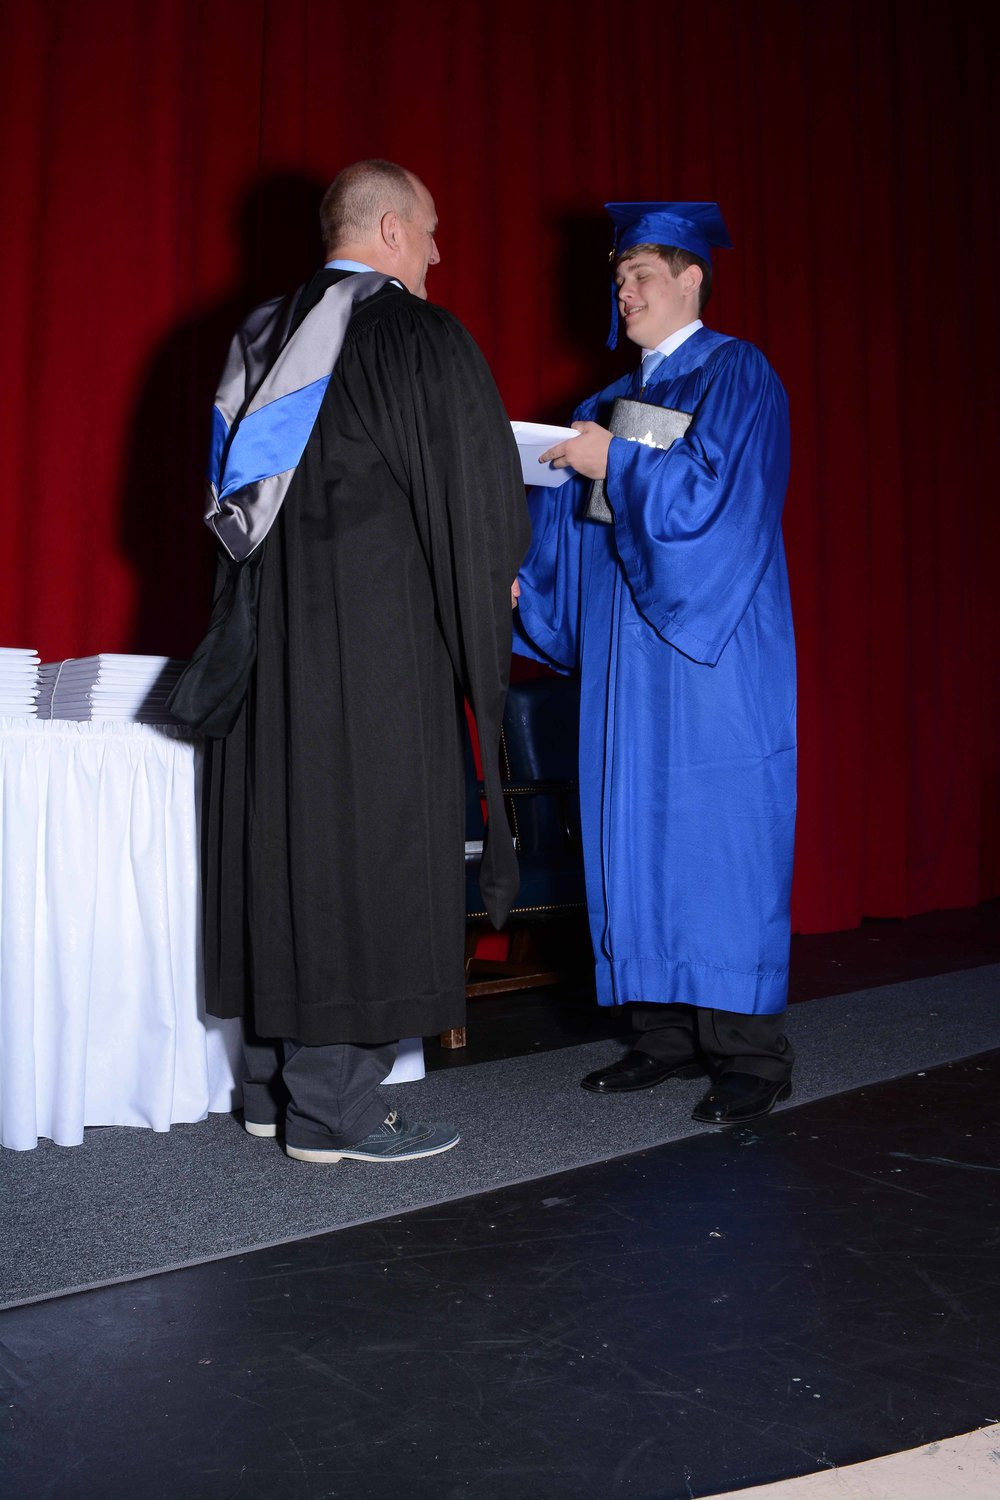 May14 Commencement04.jpg